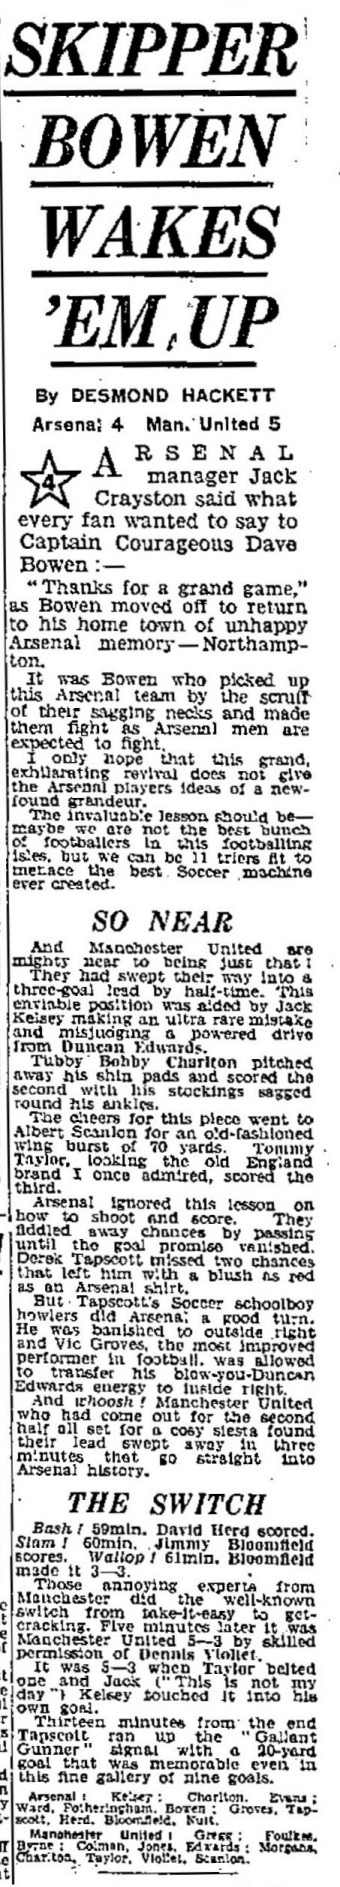 Daily Express 3 February 1958